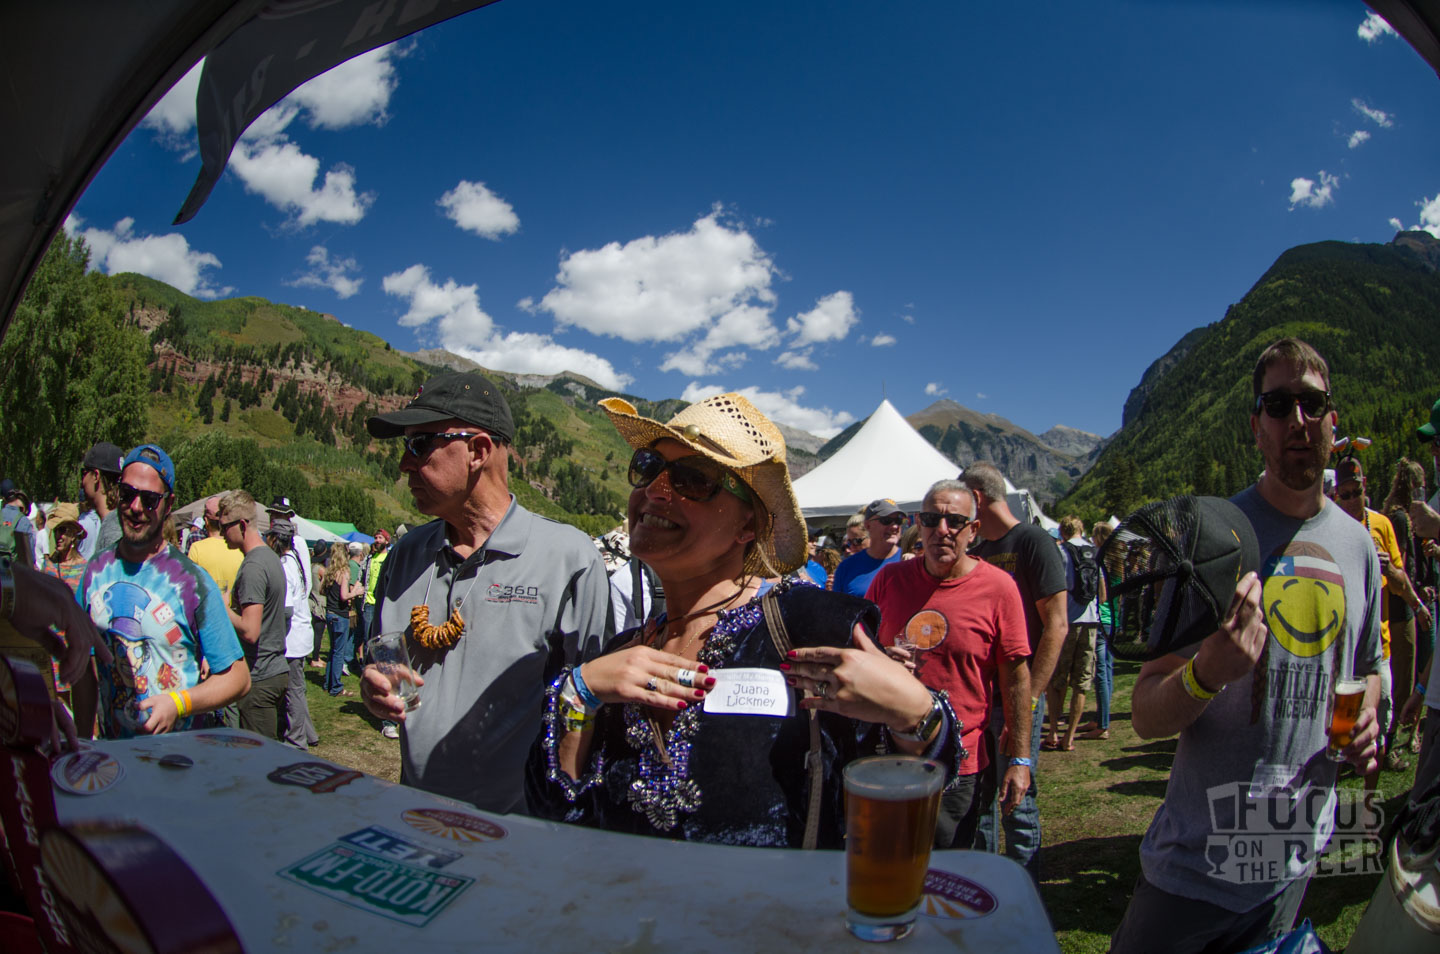 blues-and-brews-beer-fest-61